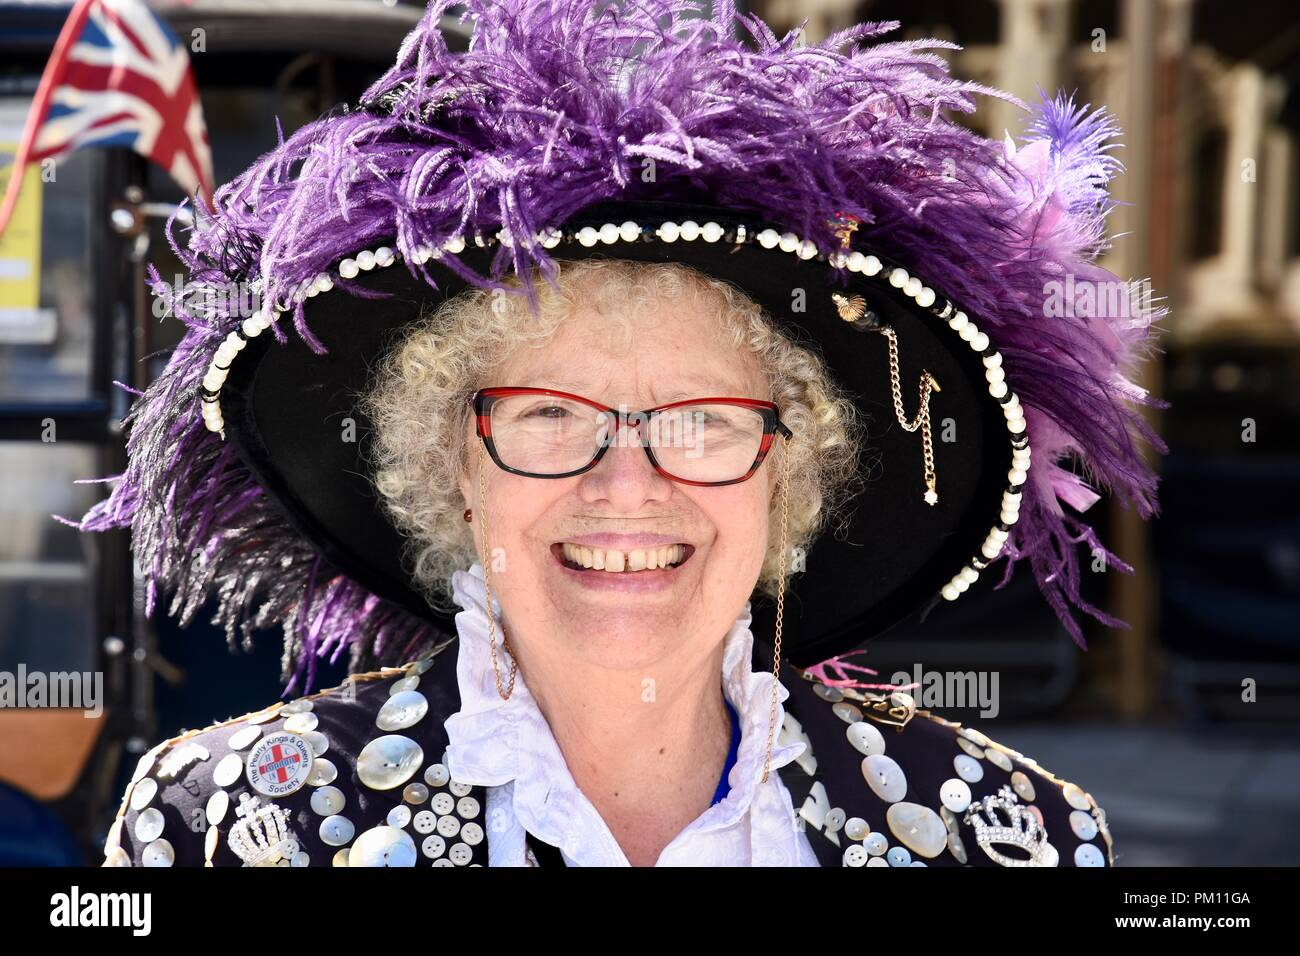 London, UK. 16th Sep, 2018. Pearly Queen,The 20th anniversary of the annual Pearly Kings and Queens Harvest Festival,Guildhall Yard,London.UK Credit: michael melia/Alamy Live News - Stock Image